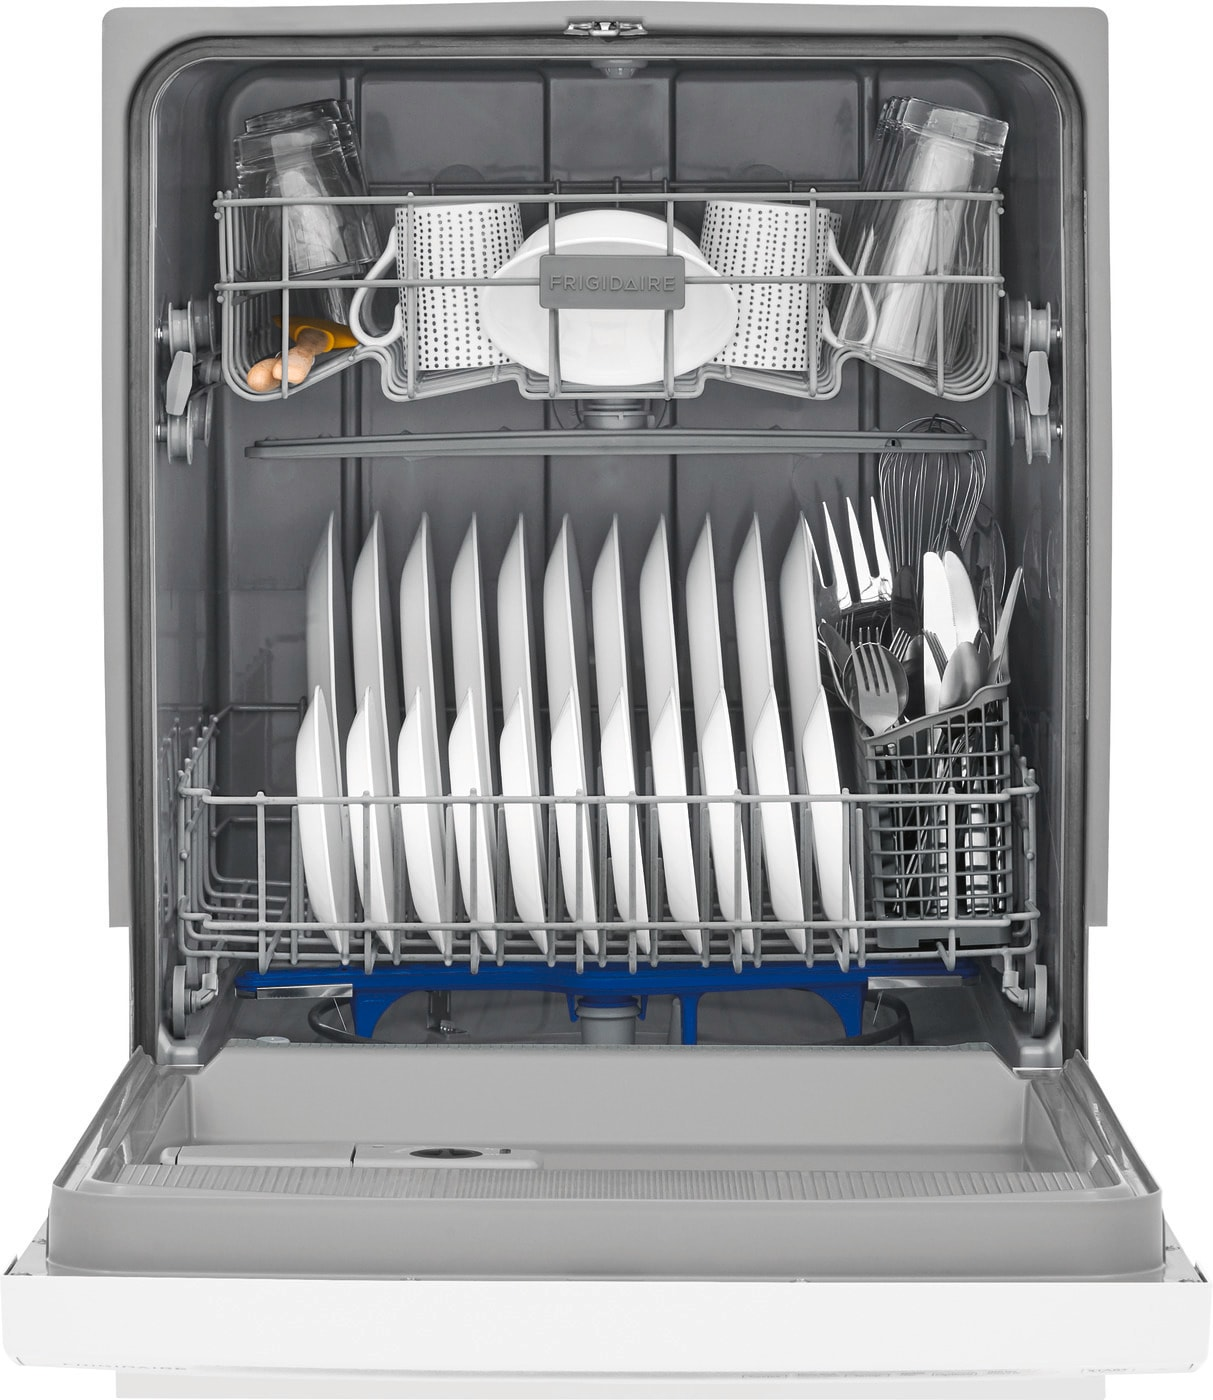 Frigidaire 24 Built In Dishwasher White Ffcd2418uw